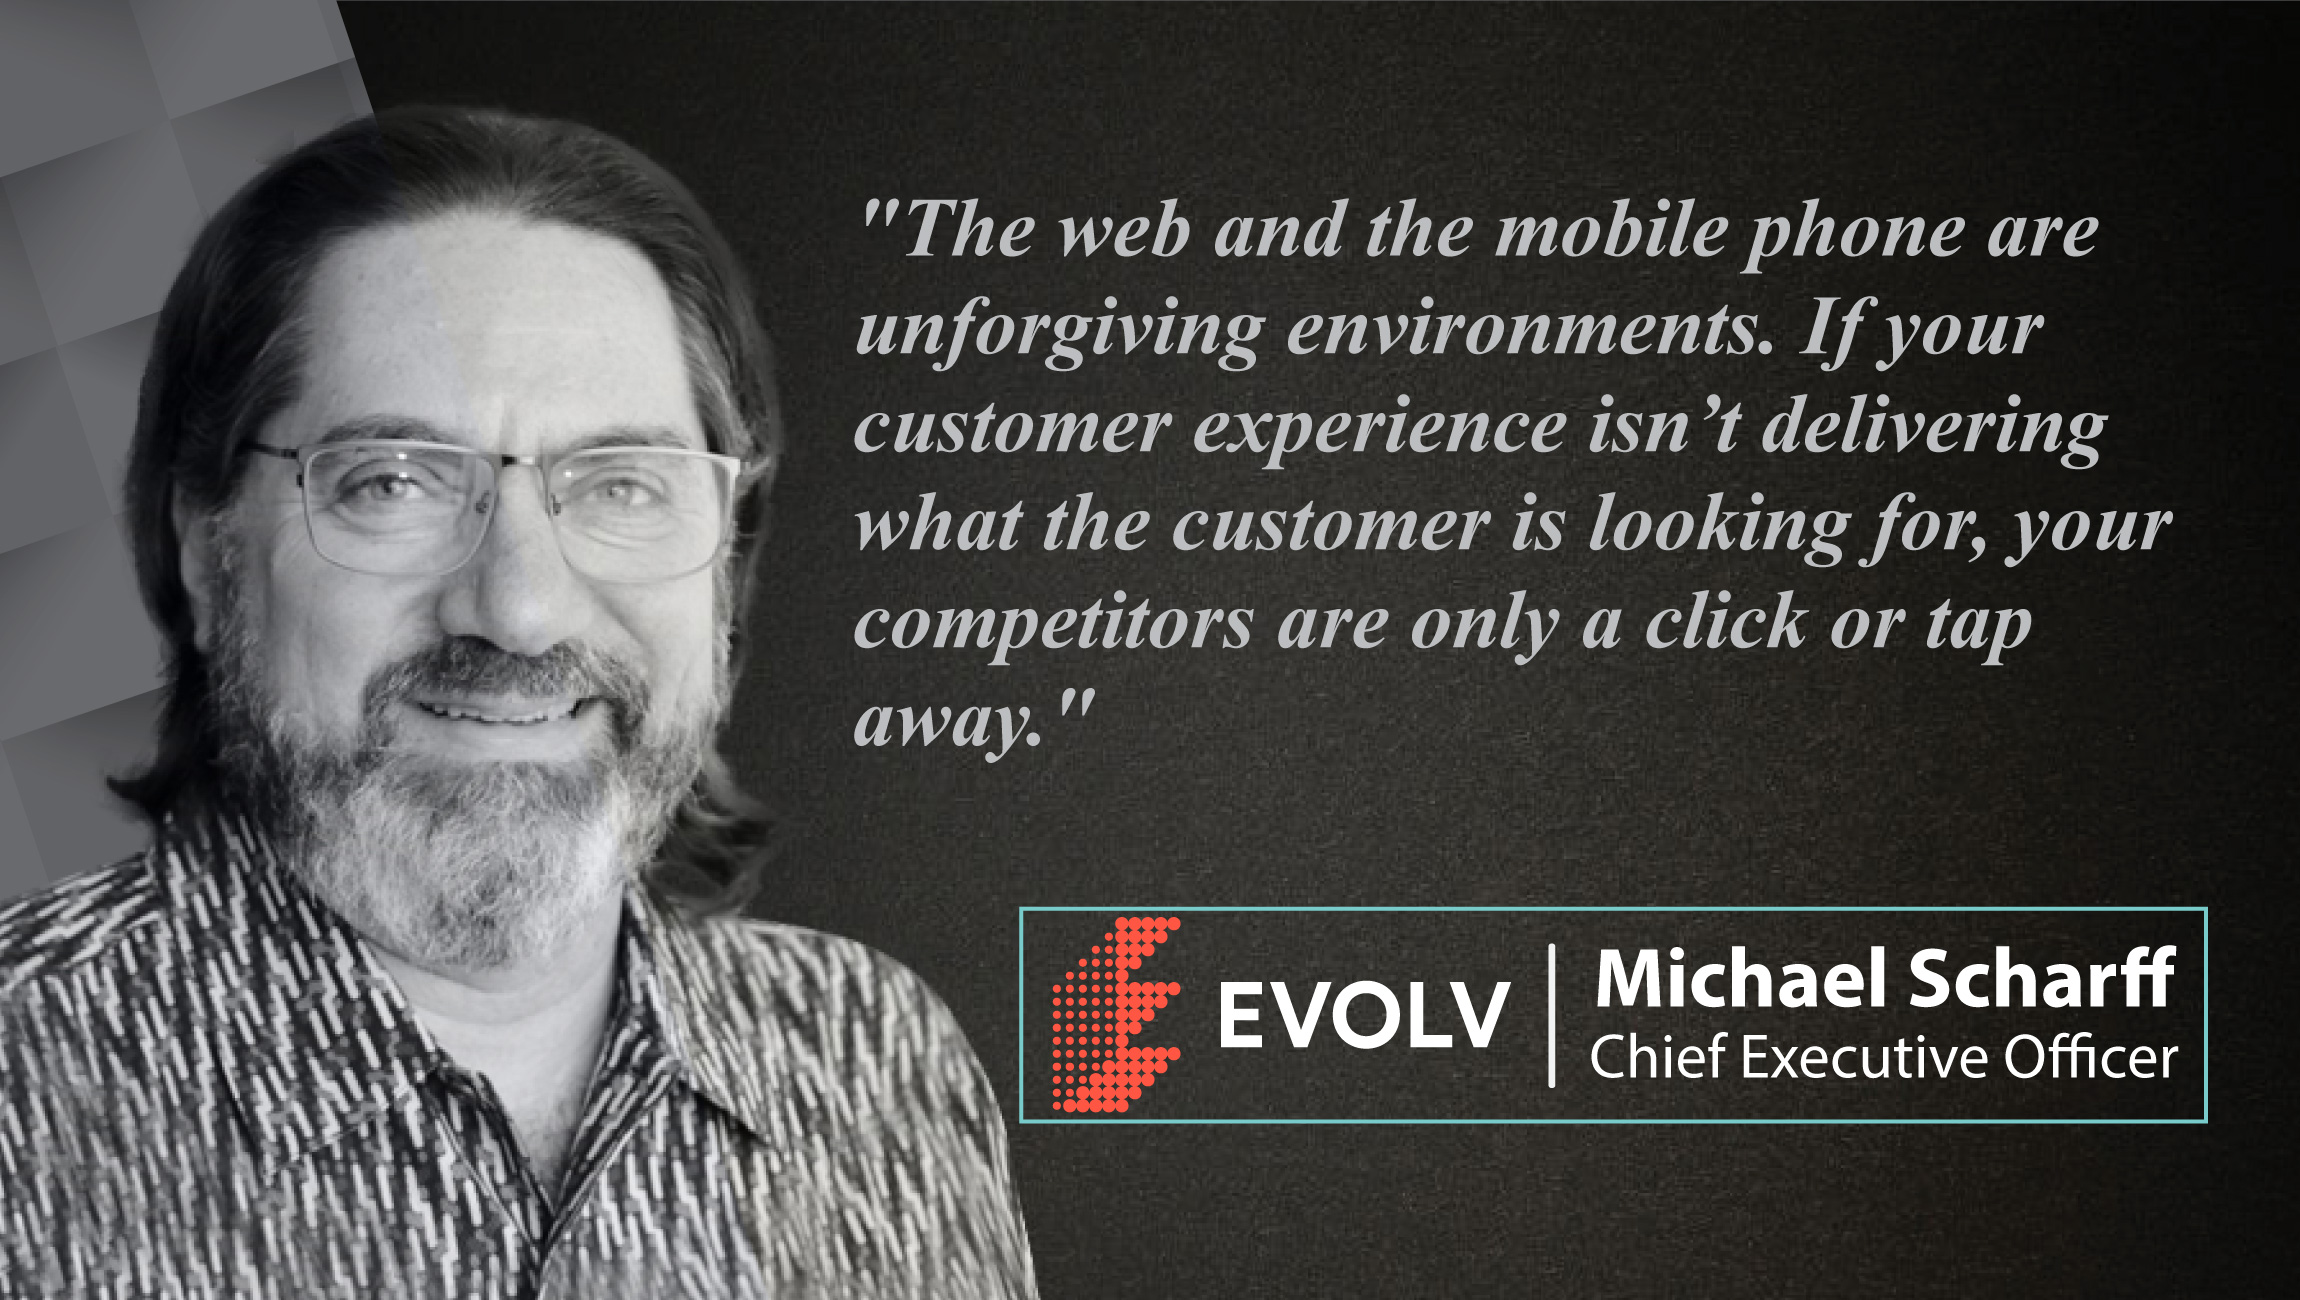 Michael Scharff , Chief Executive Officer at Evolv